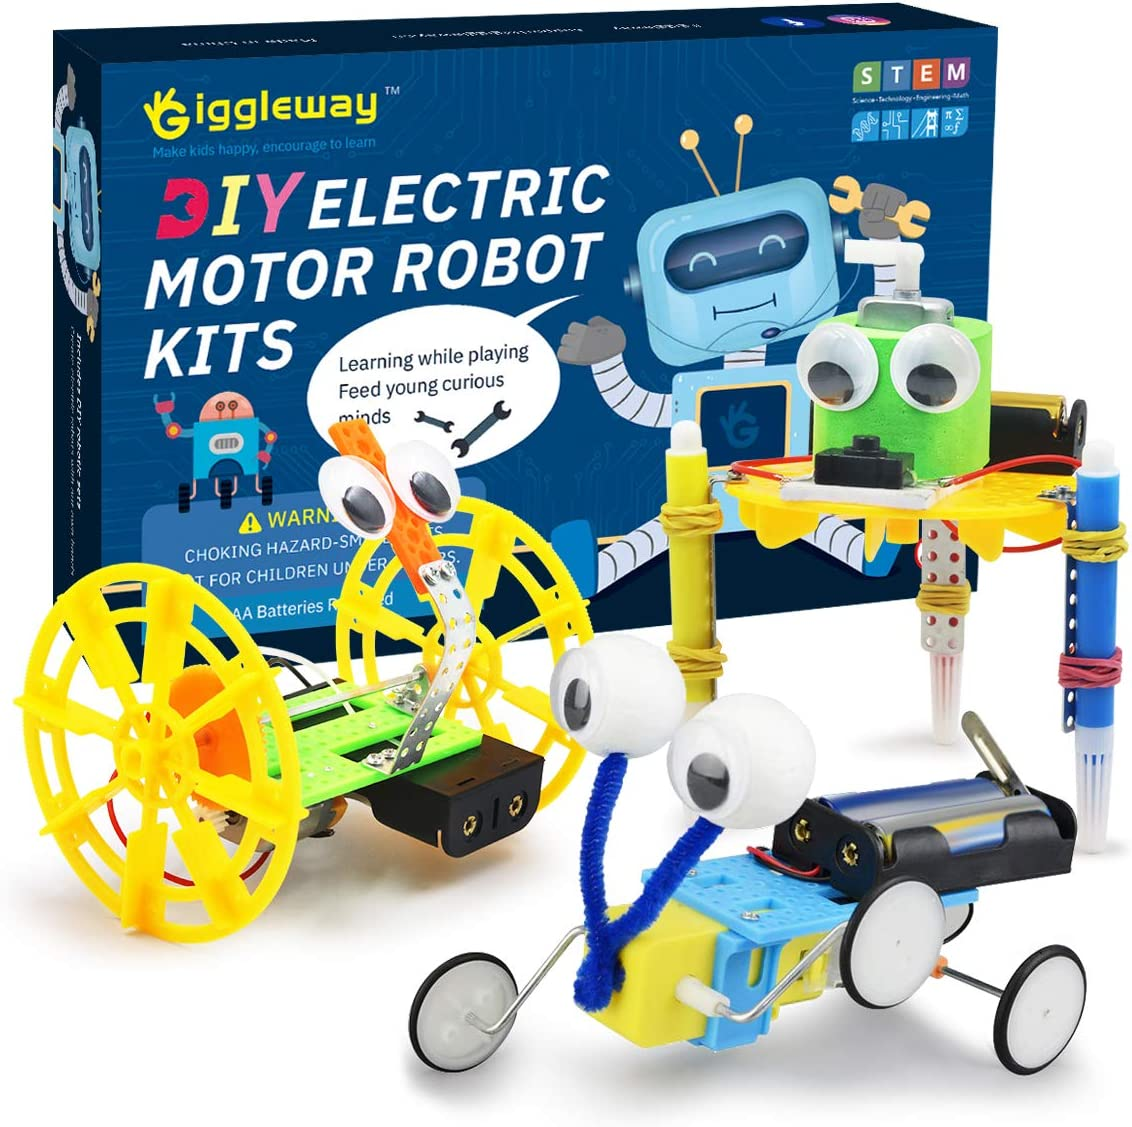 Giggleway Electric Motor Robotic Science Toys DIY Kits Dallas Mall Recommended STEM for